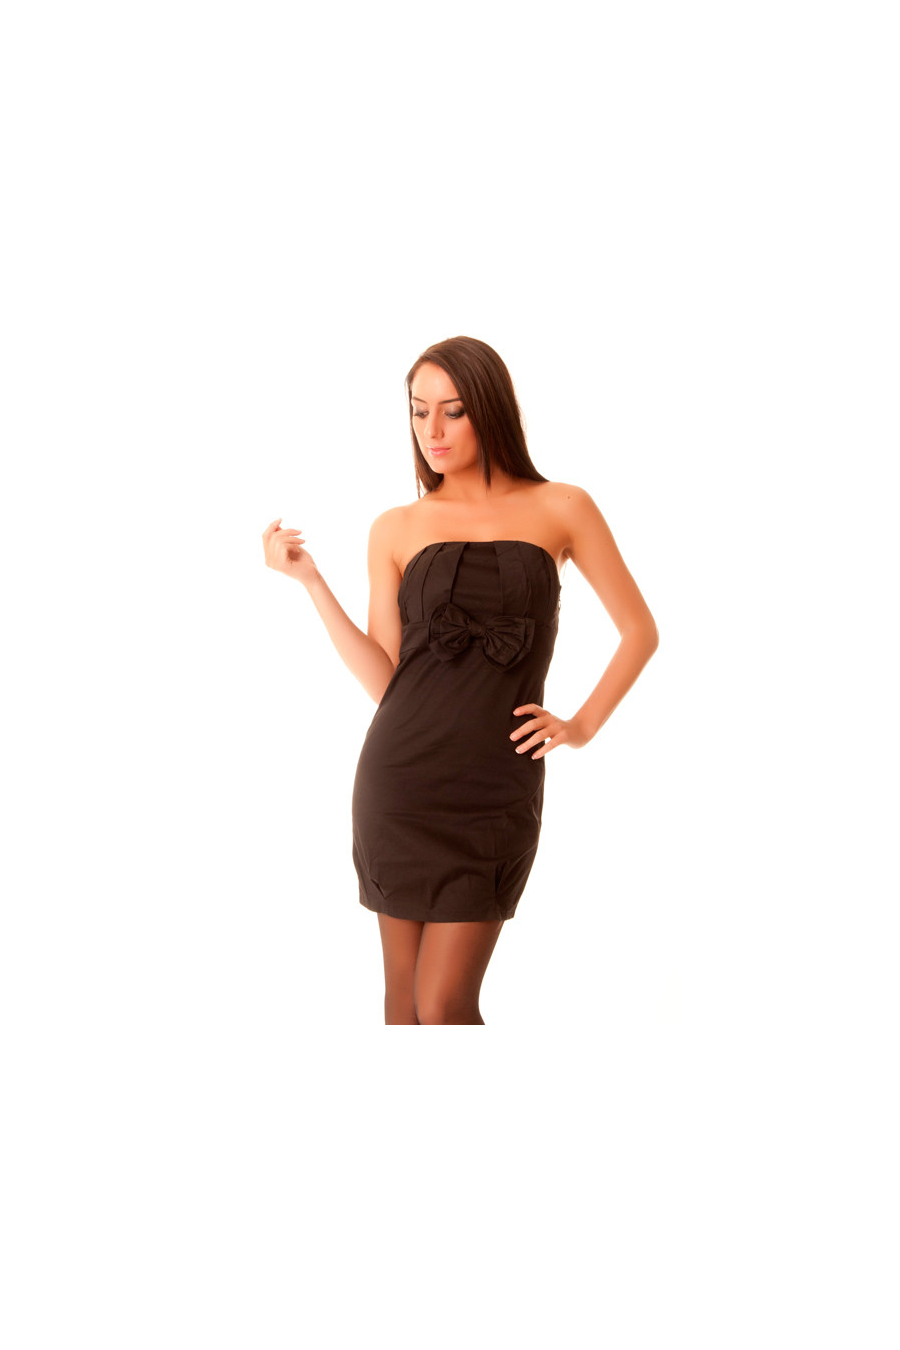 Fitted black dress with bow tie. 8290